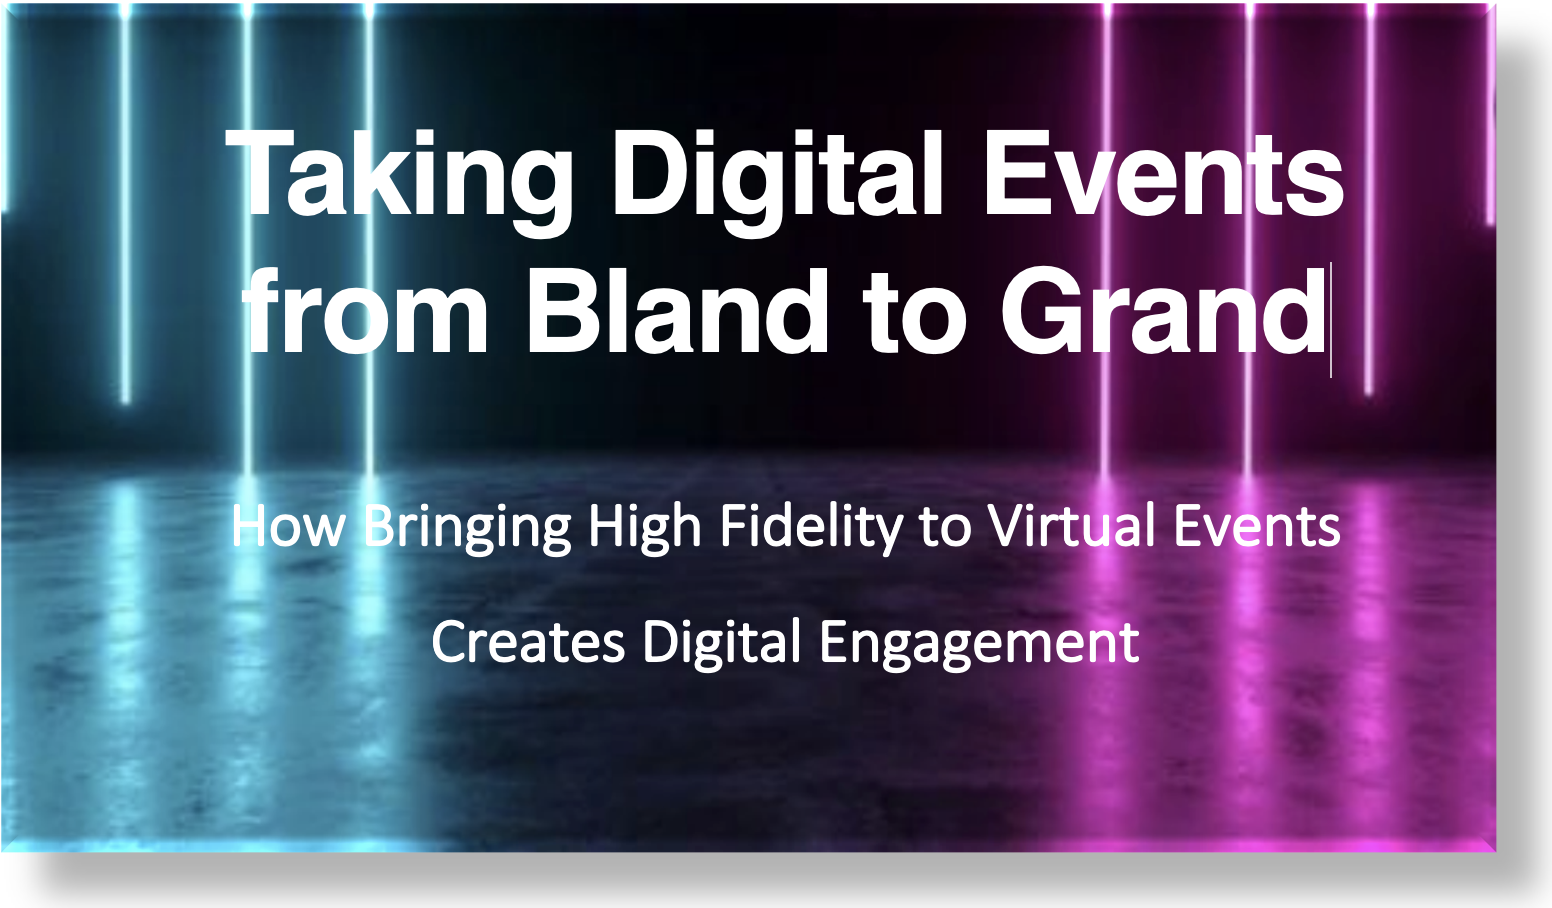 Taking Digital Events from Bland to Grand